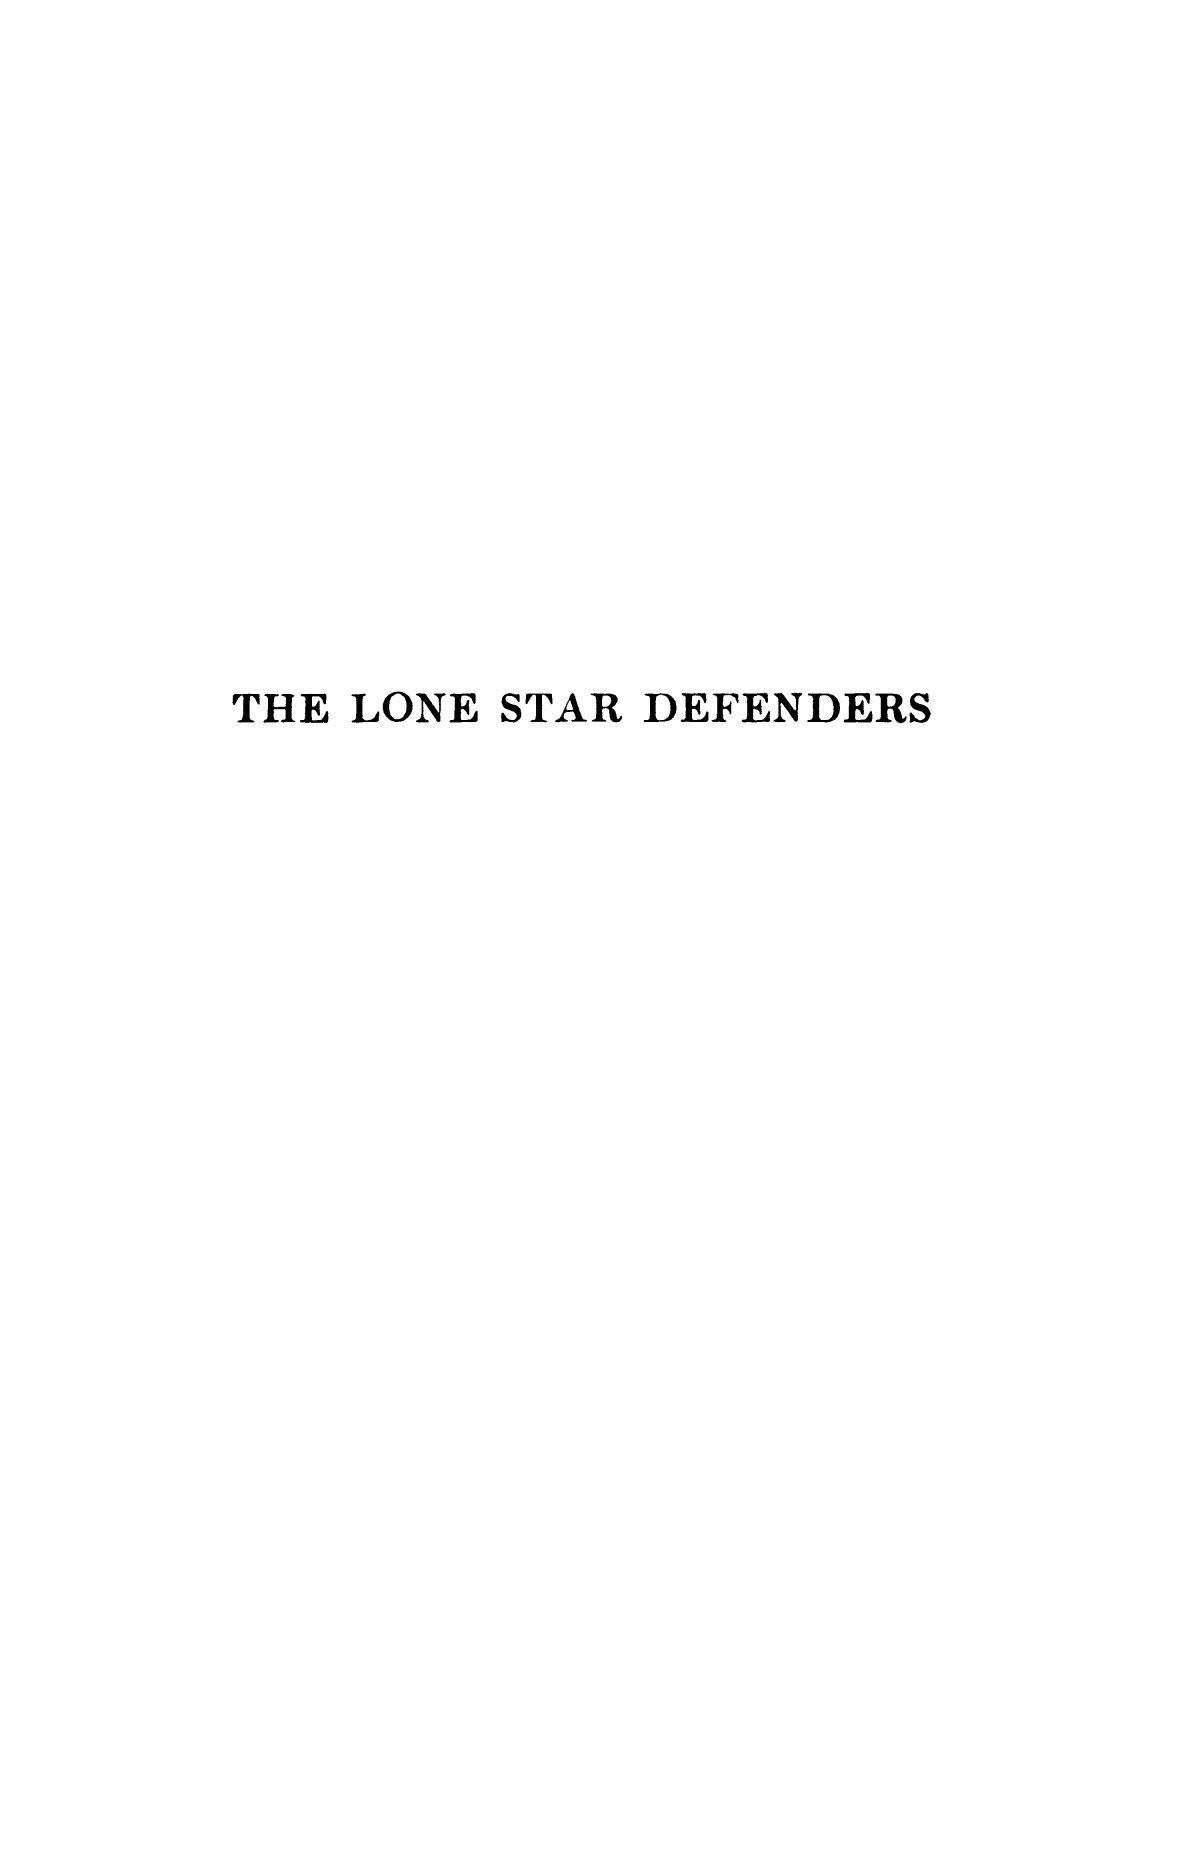 The Lone Star defenders; a chronicle of the Third Texas cavalry, Ross brigade                                                                                                      [Sequence #]: 1 of 306